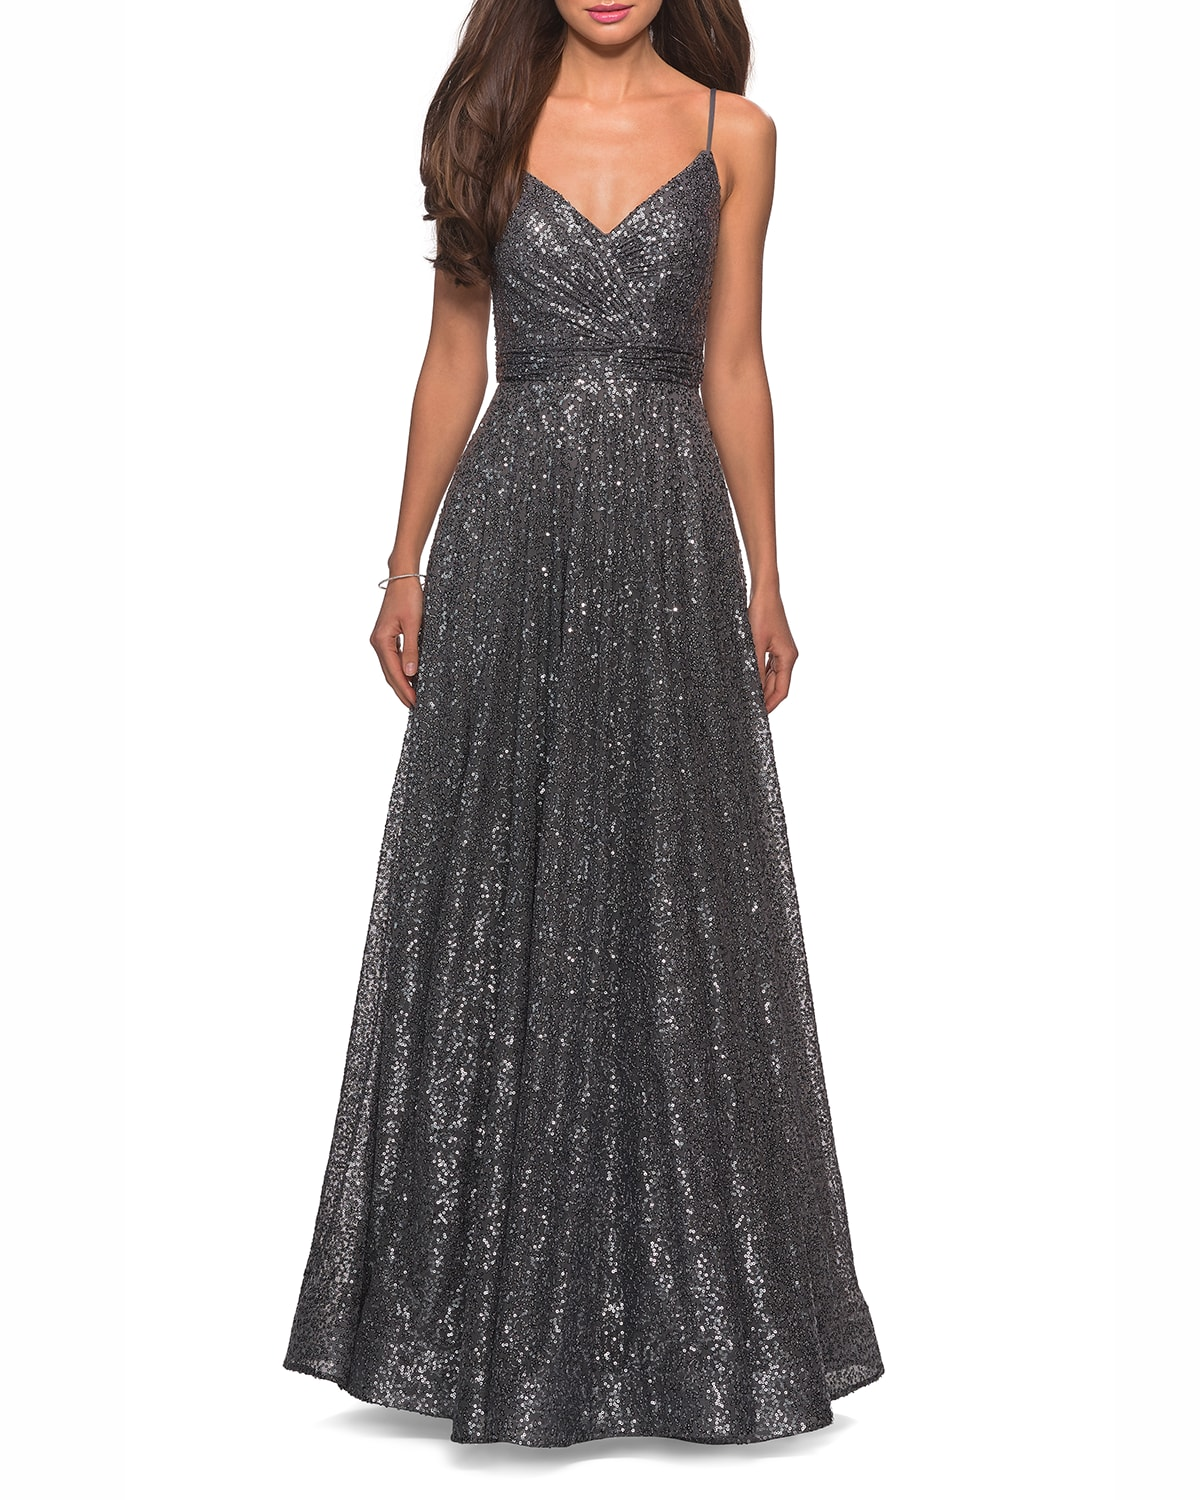 Sequin V-Neck Sleeveless A-Line Gown with Ruched Bodice